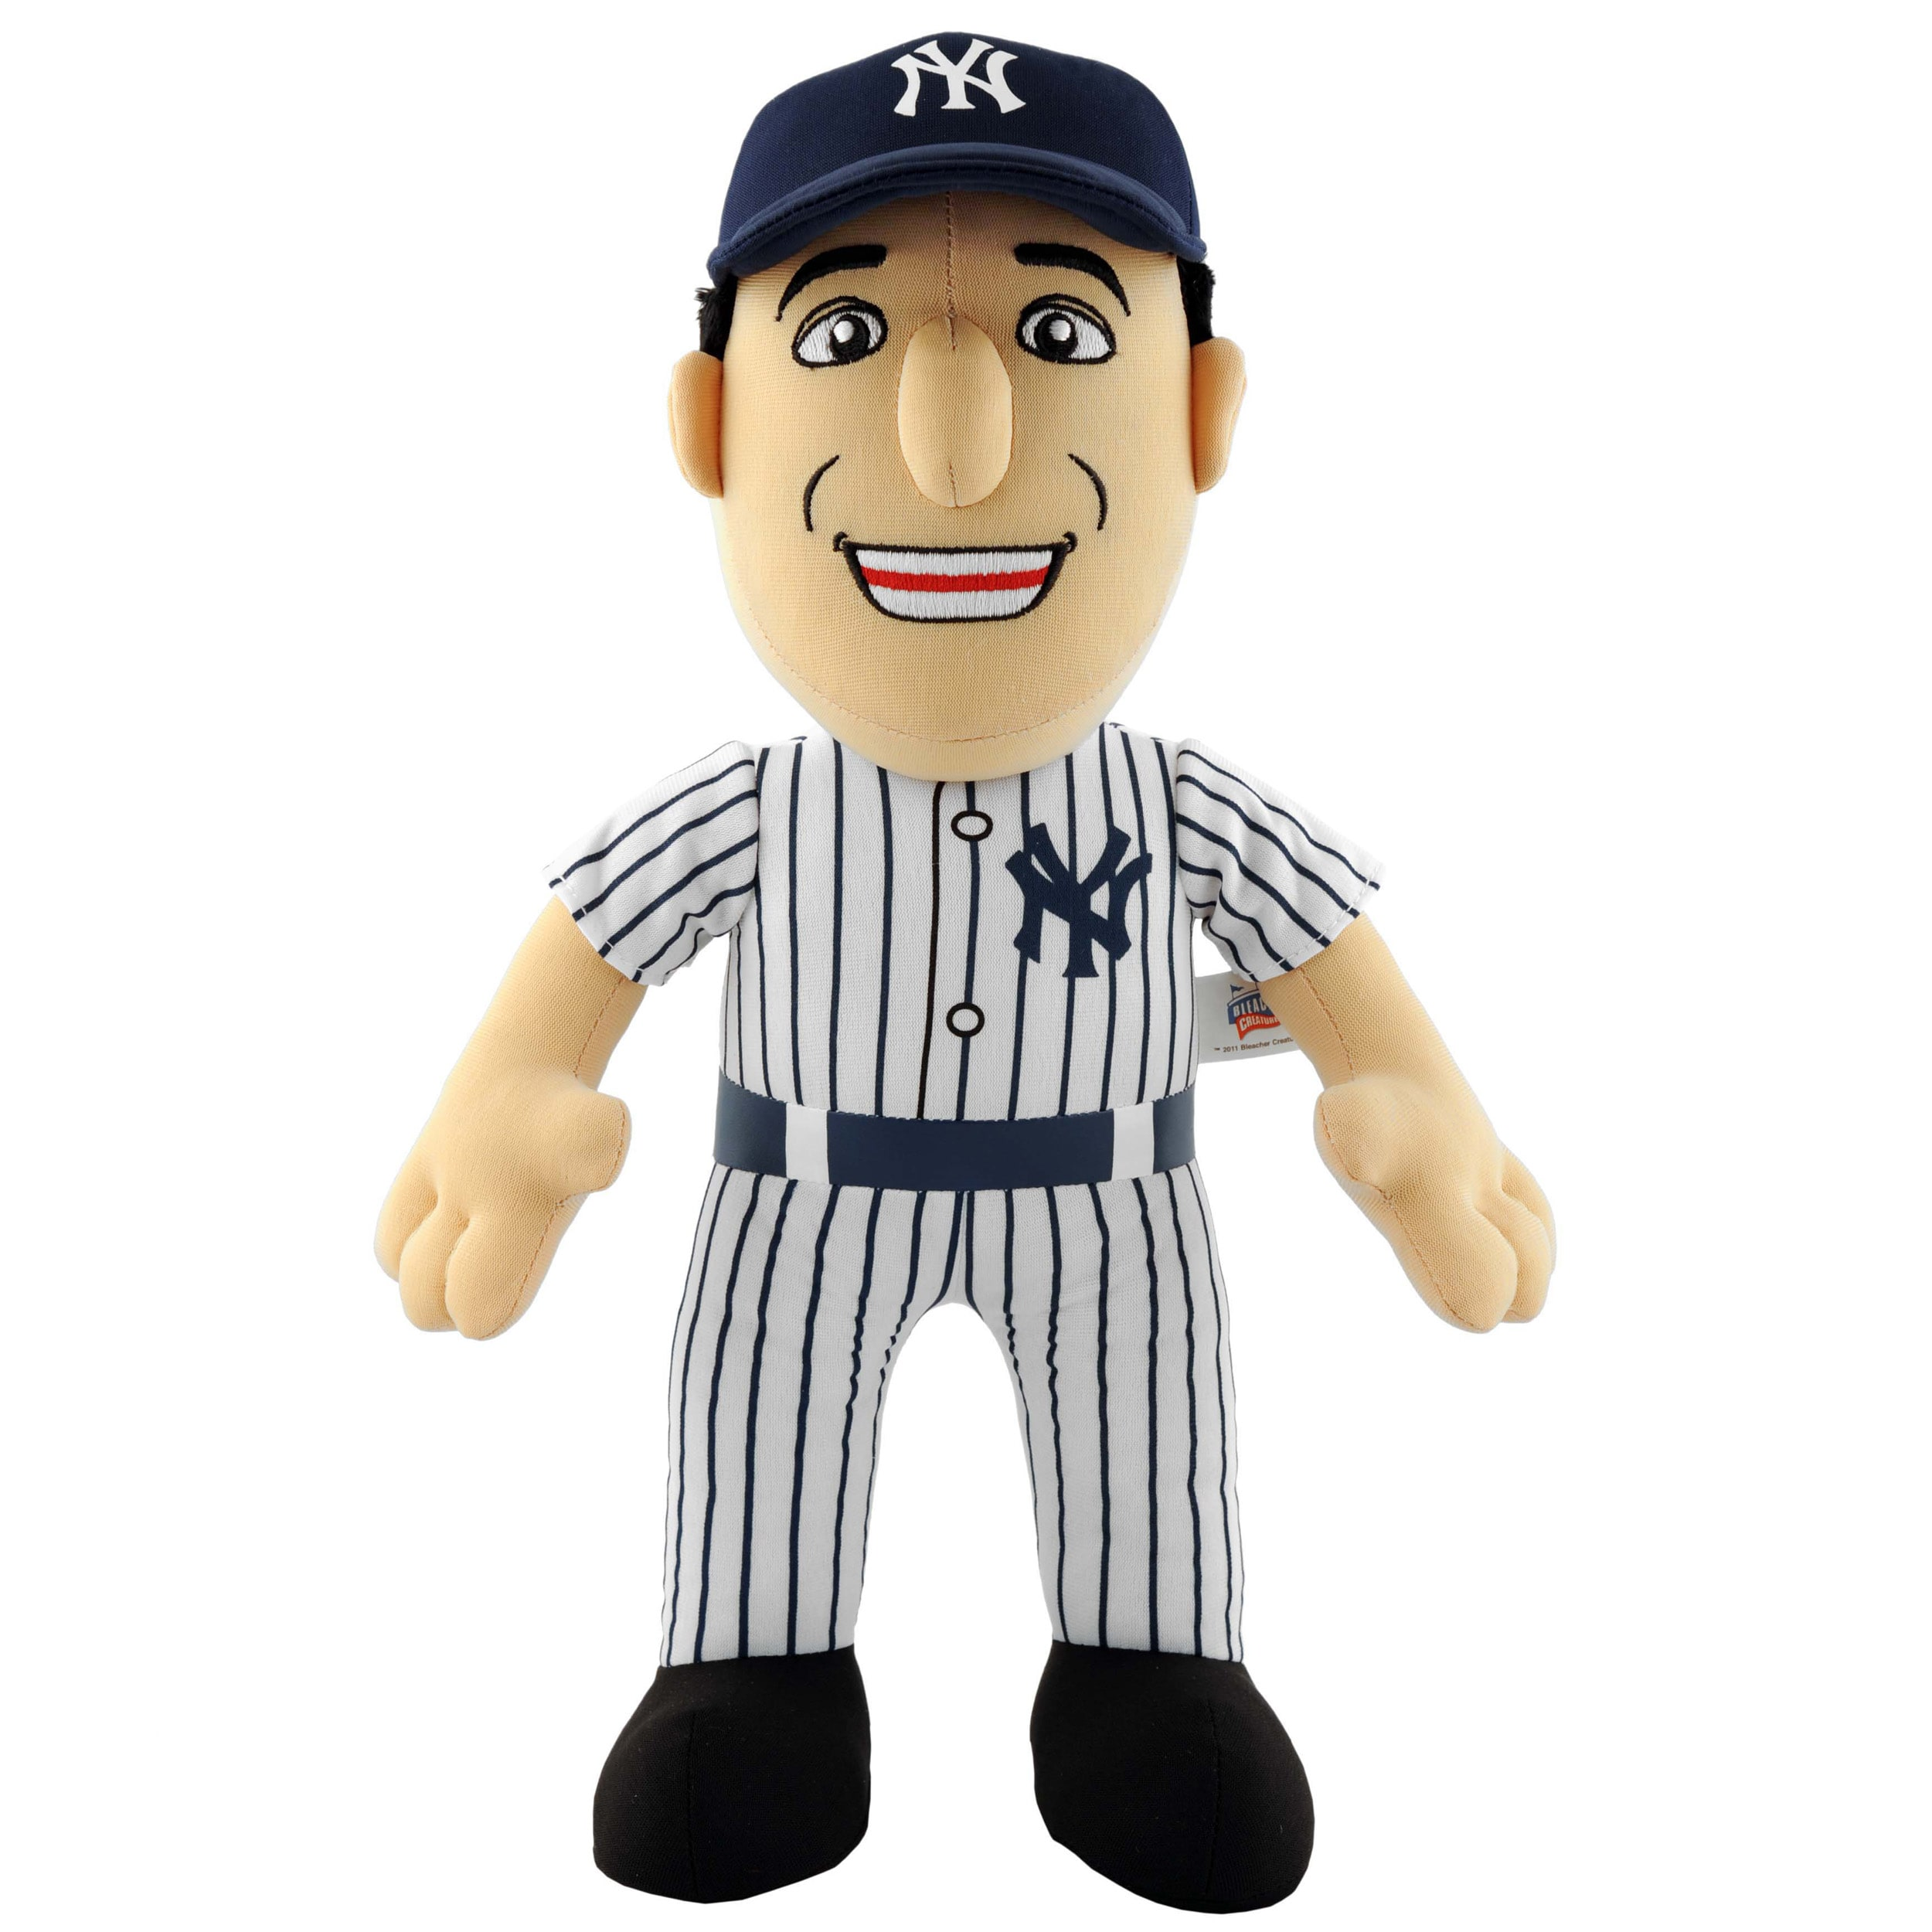 New York Yankees Mark Teixeira 14-inch Plush Doll